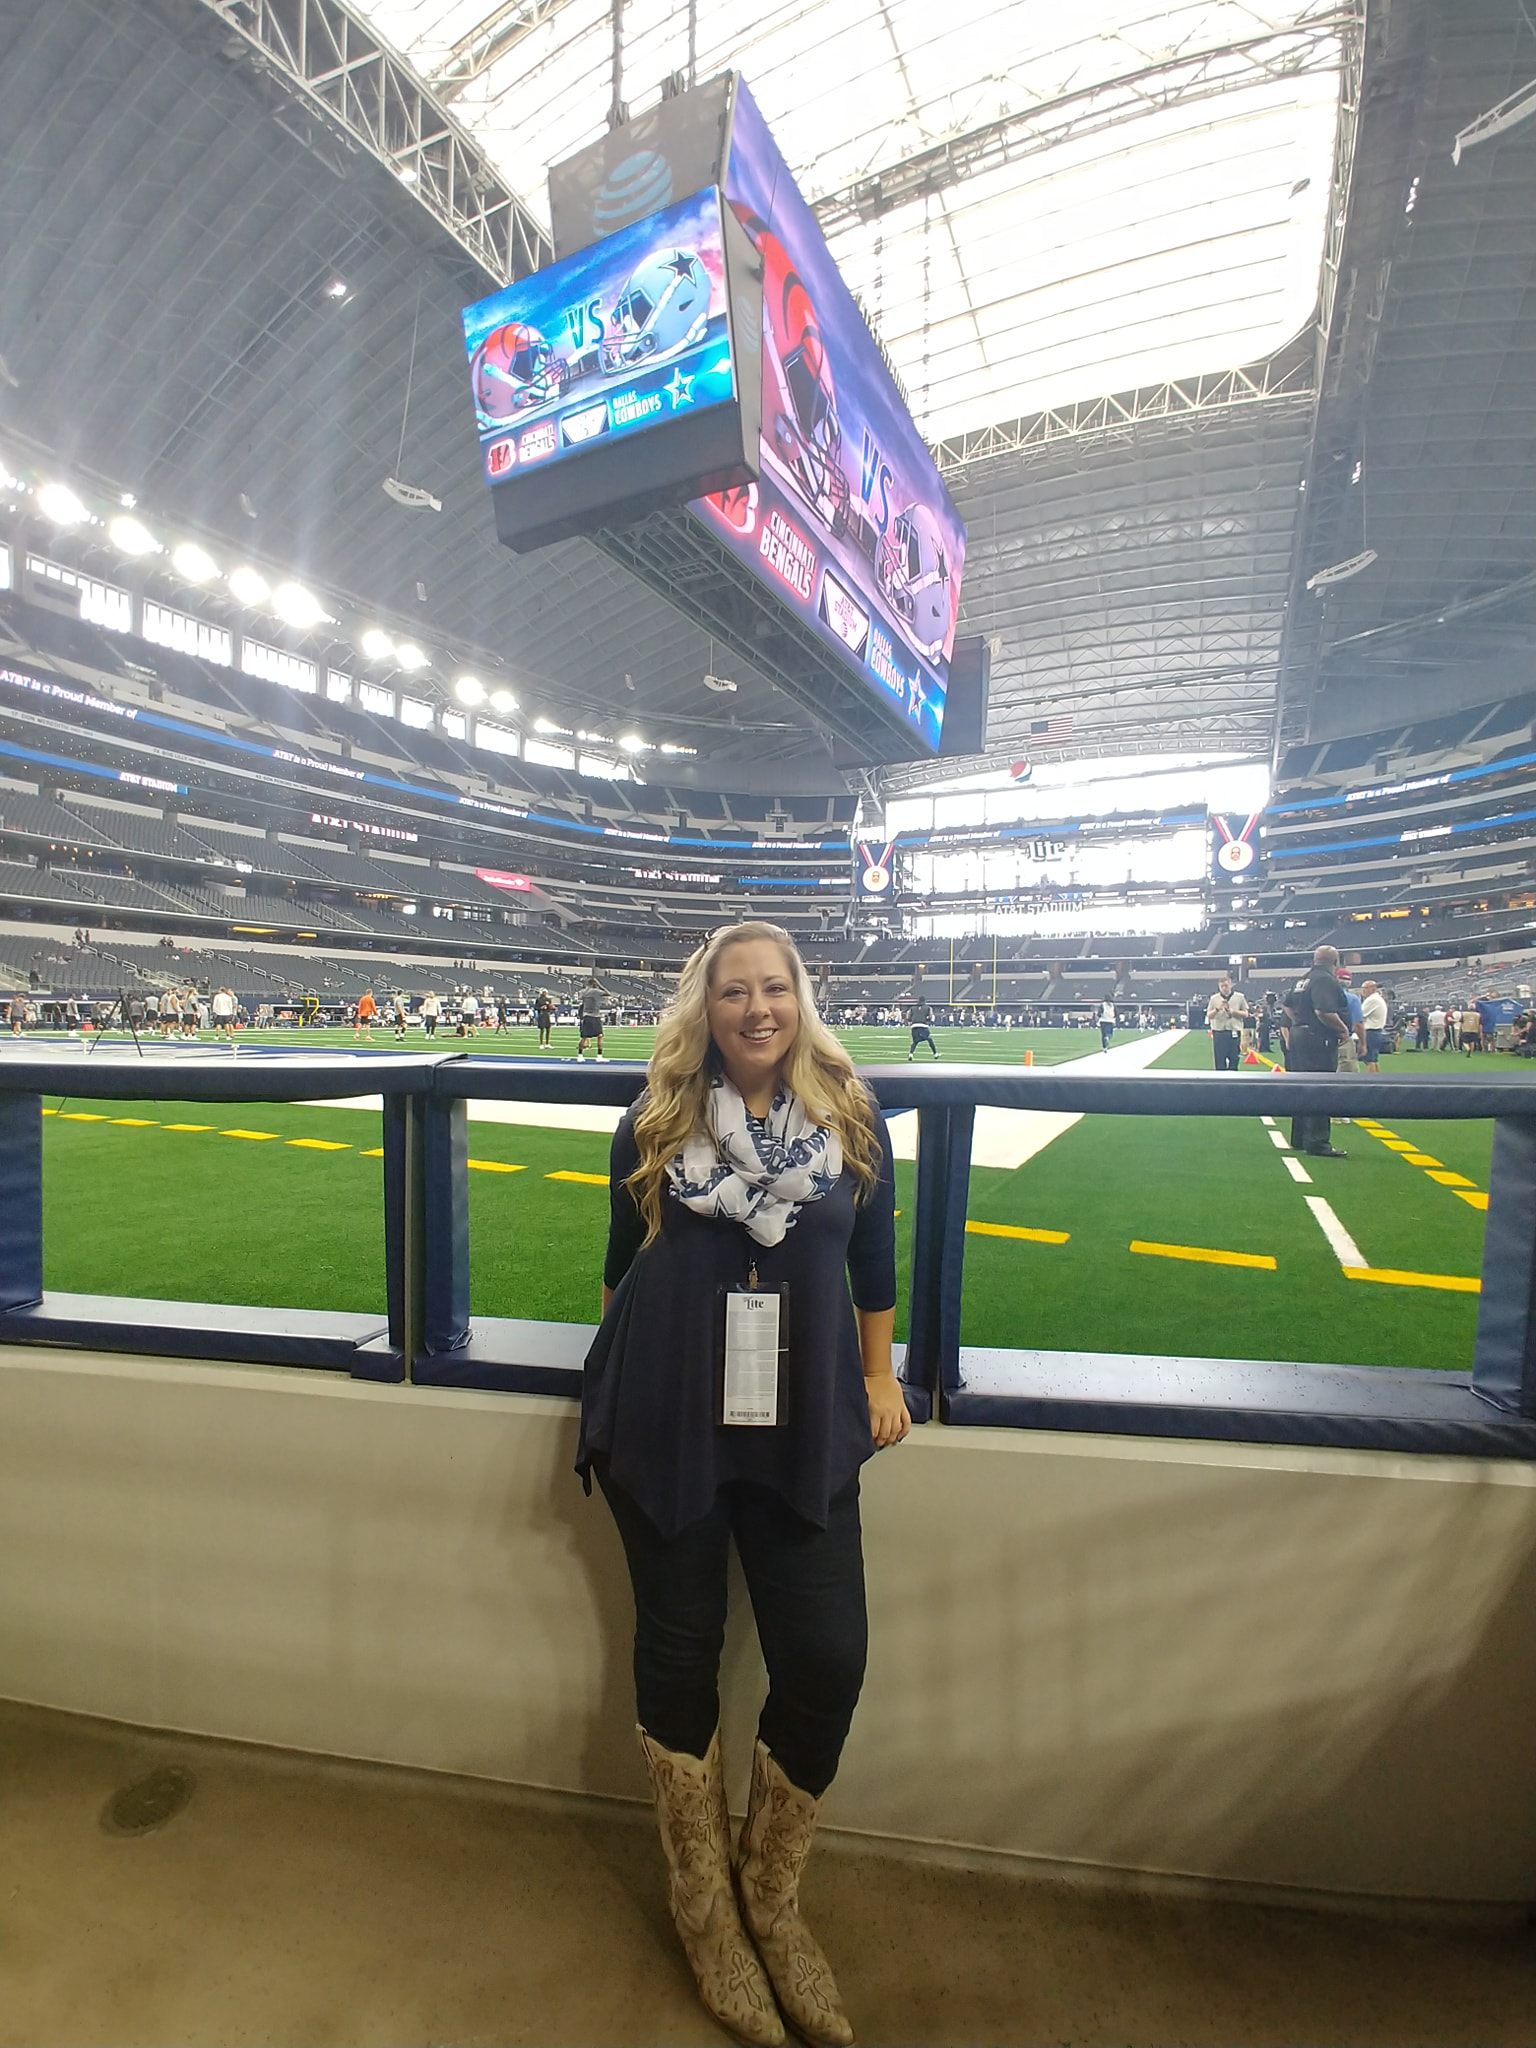 Courtney McConnell, a VisitDallas team member, is highlighted is this month's Meet the Team series.